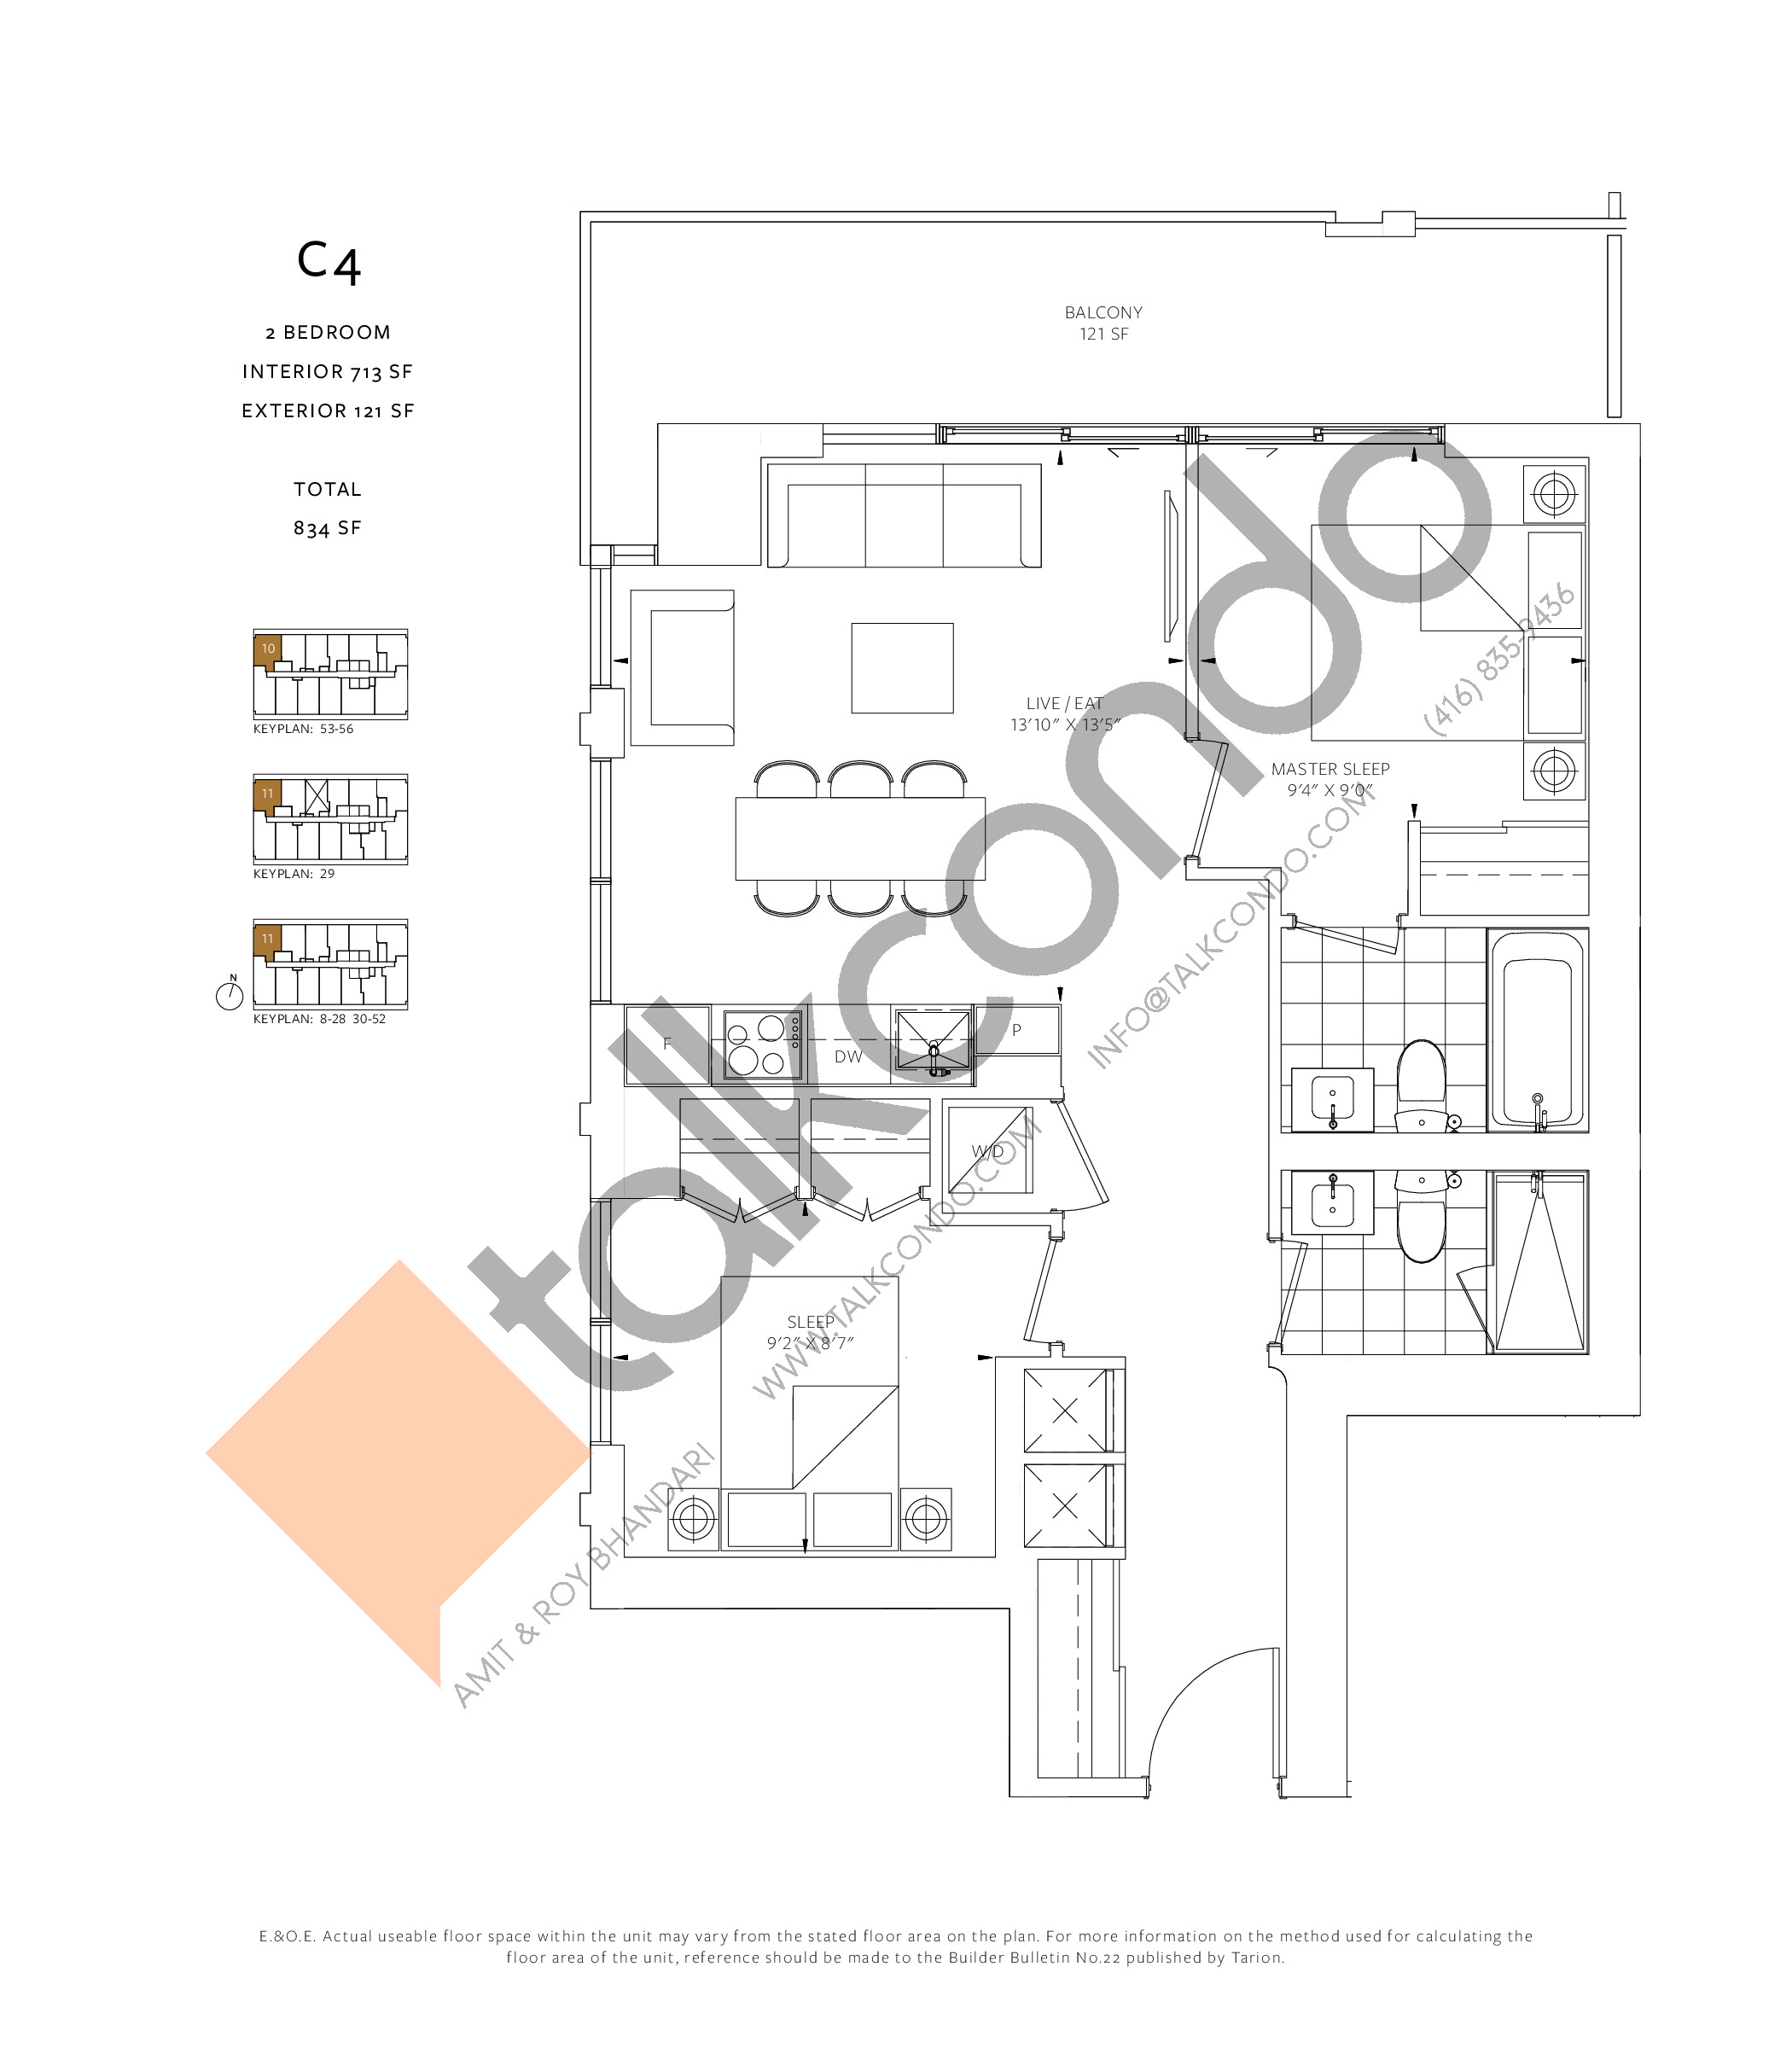 C4 Floor Plan at 88 Queen Condos - Phase 2 - 713 sq.ft